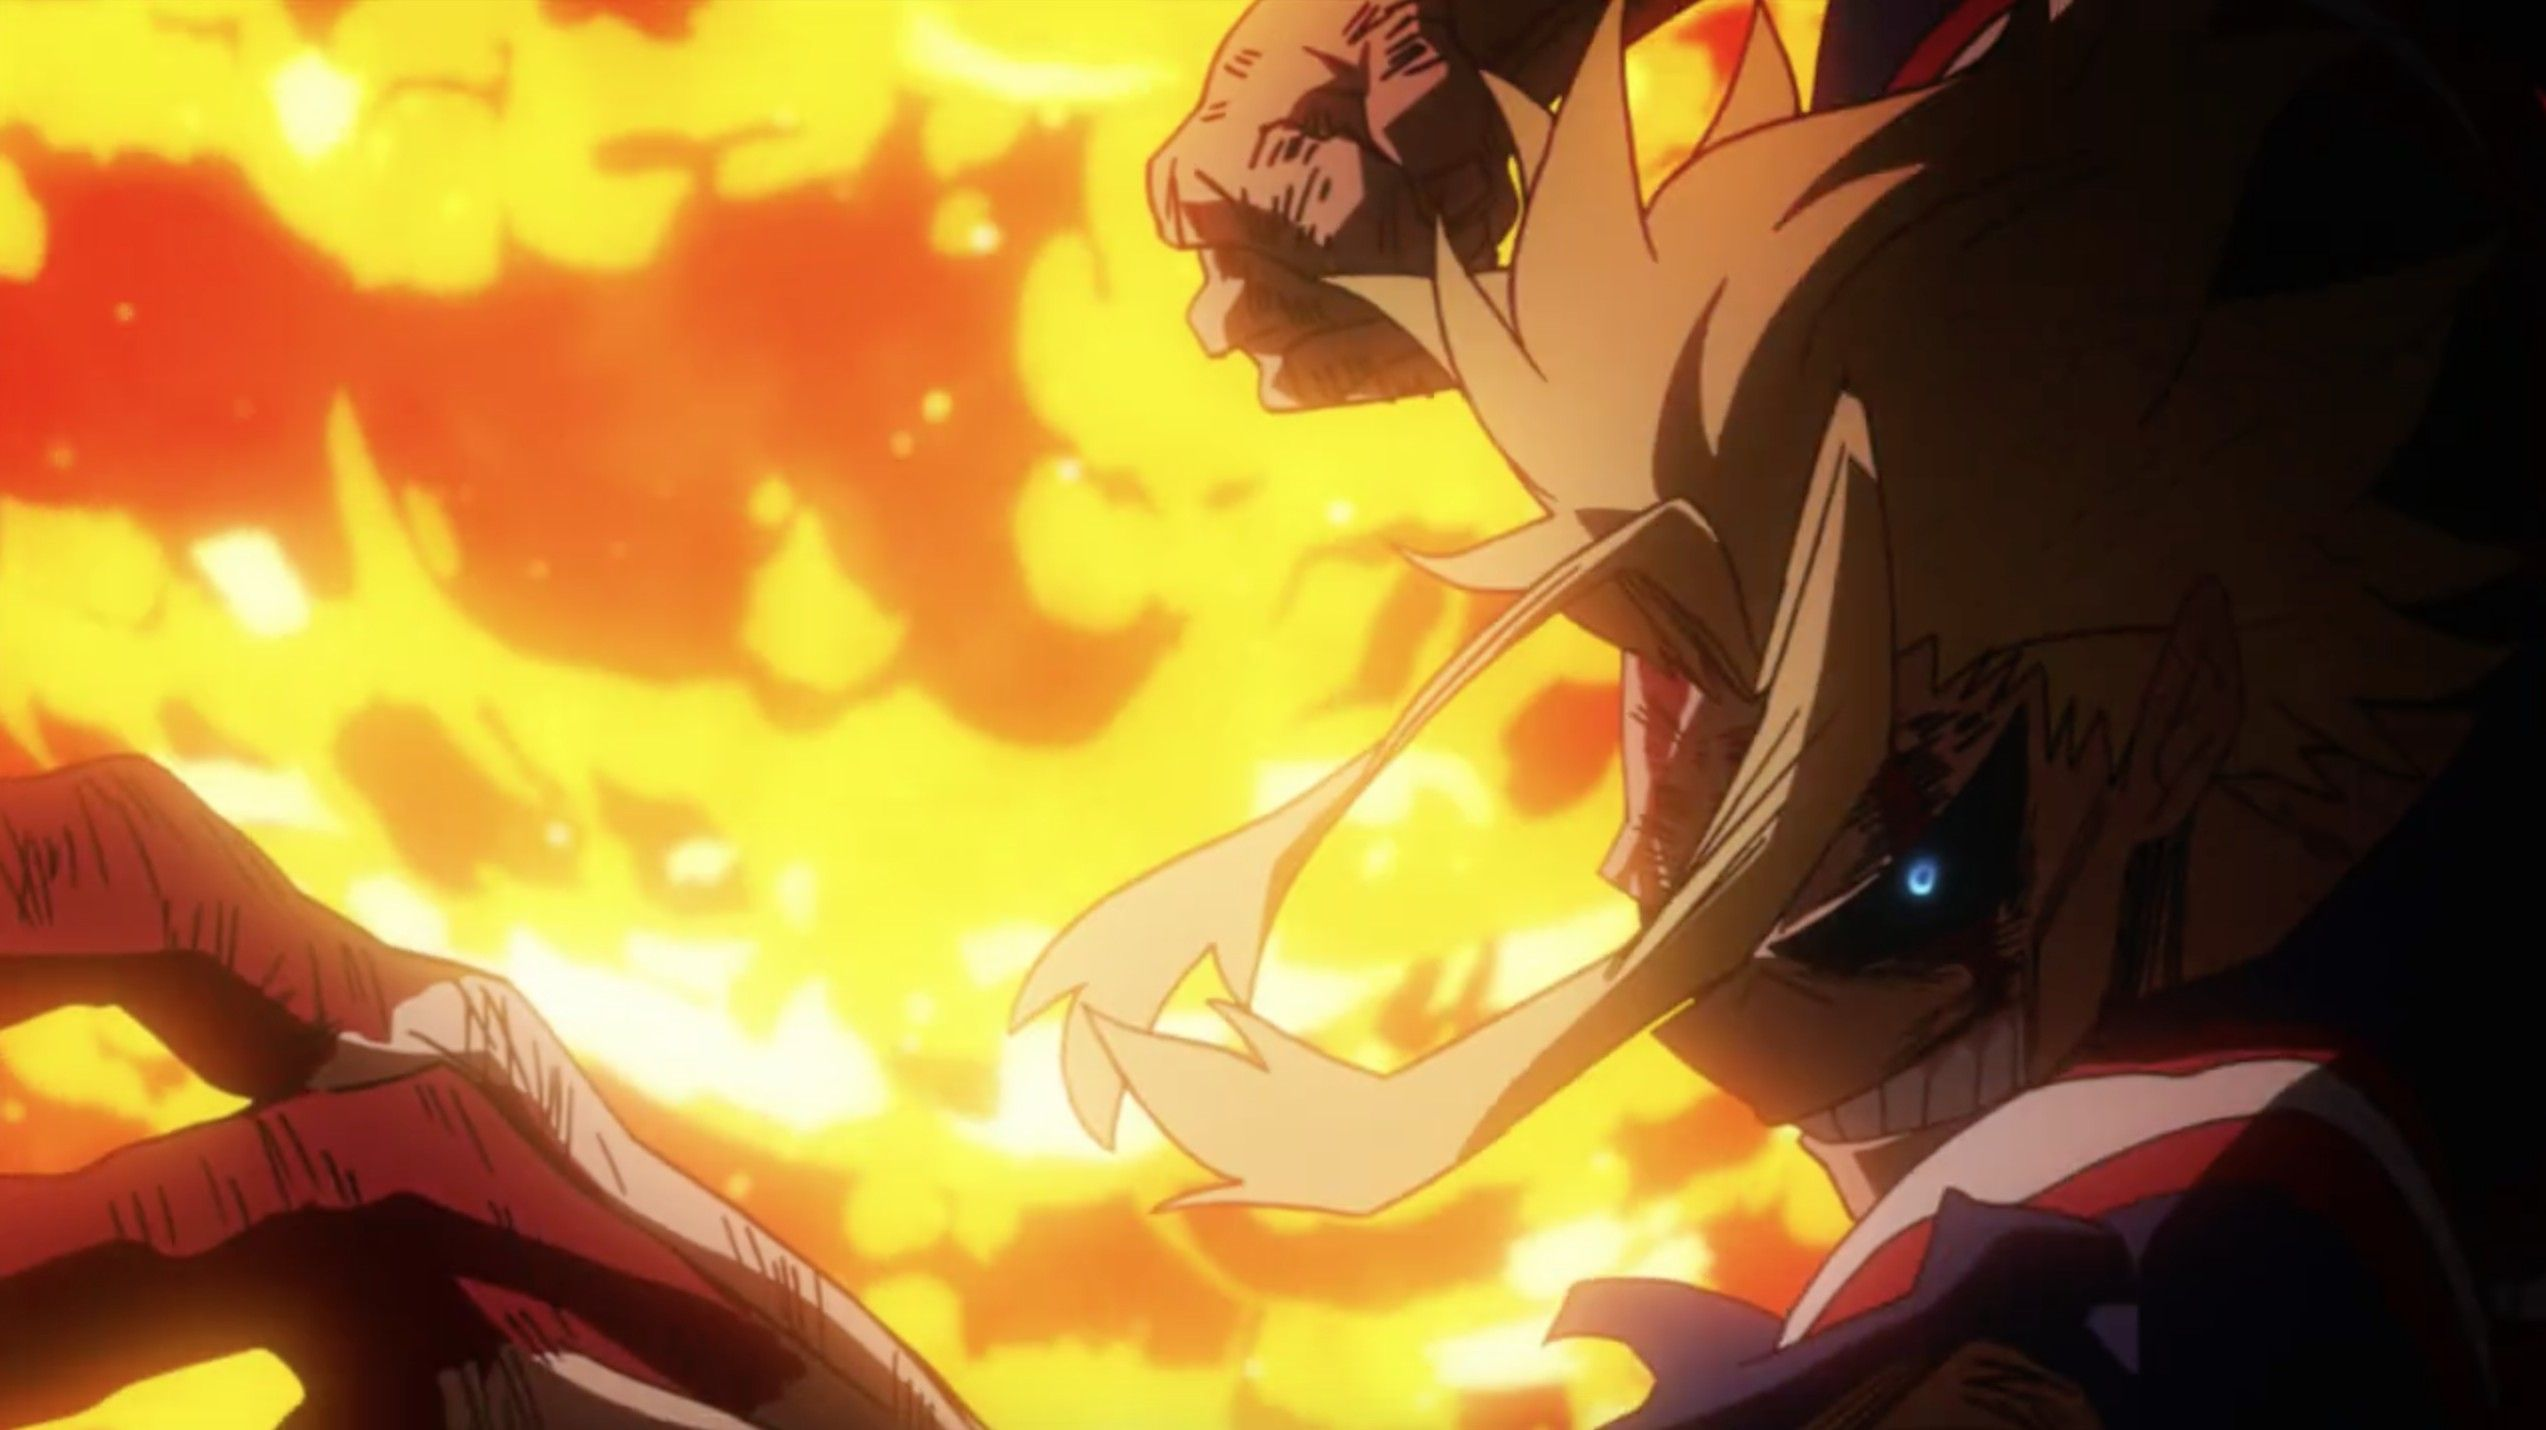 Awesome Best Anime Fights Of 2016 di 2020